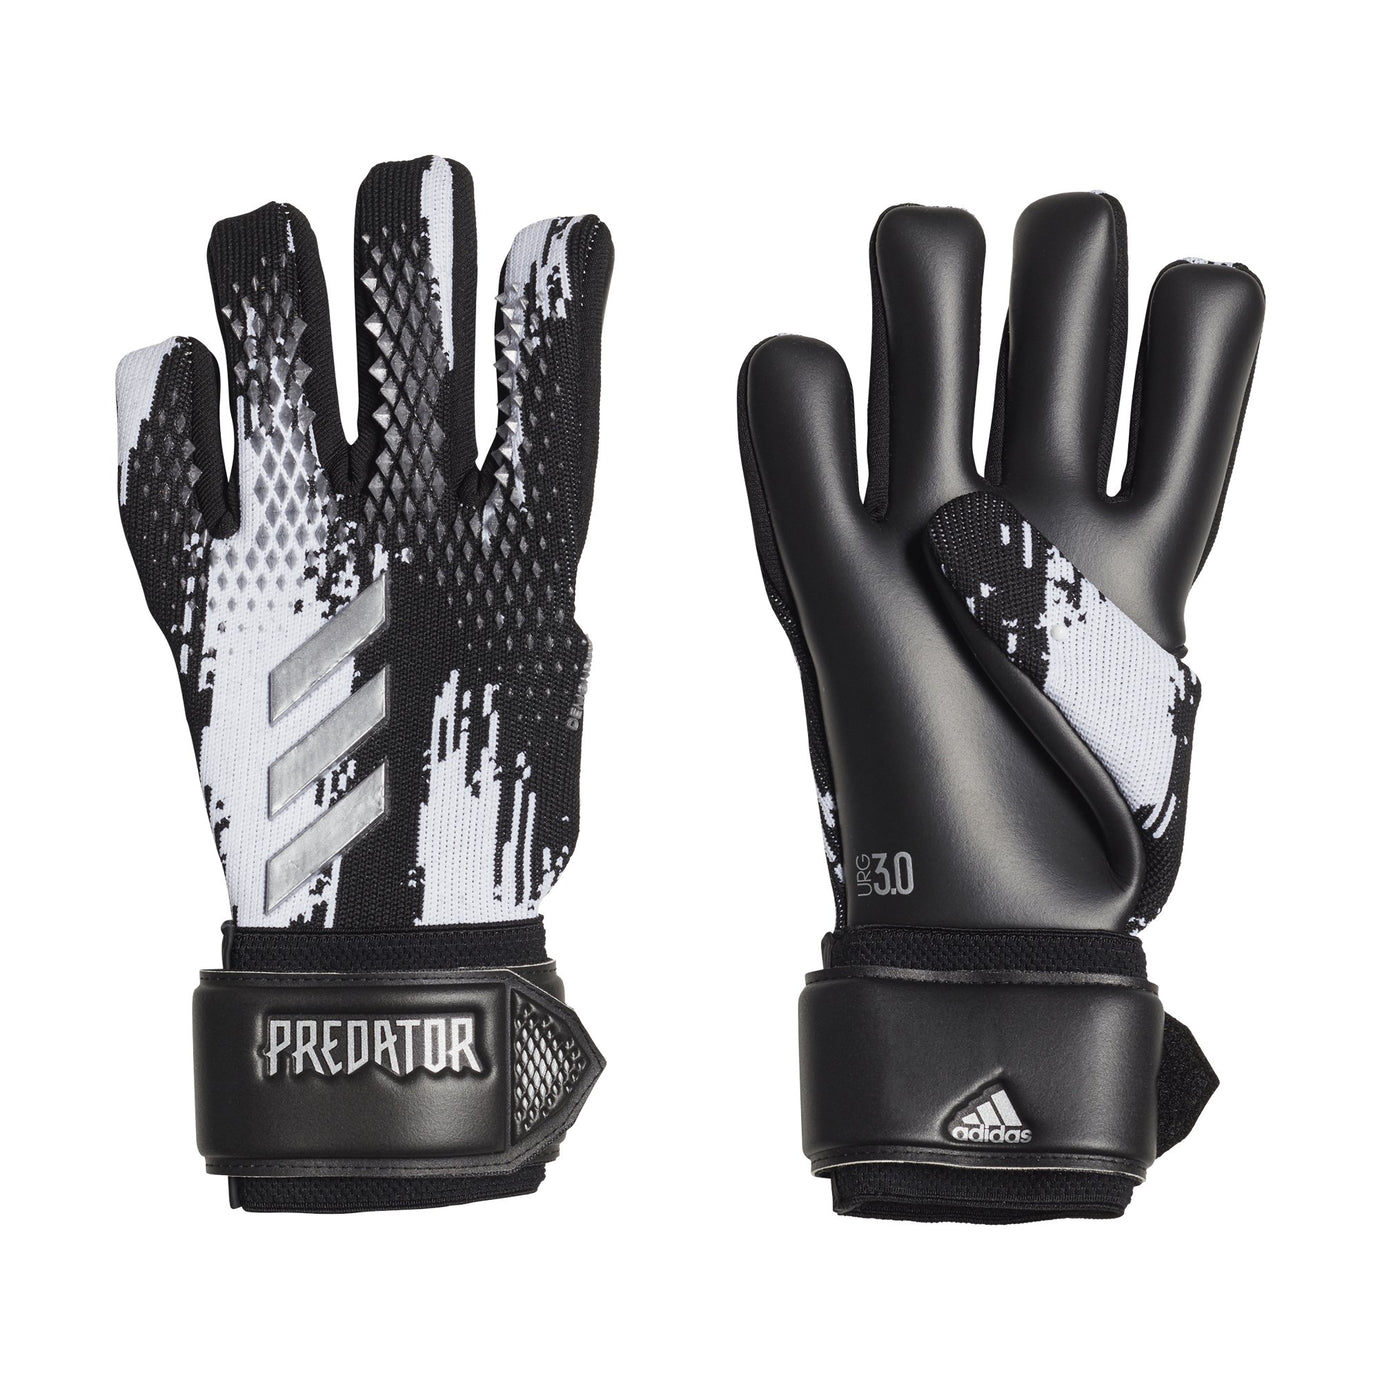 ADI PREDATOR20 LEAGUE GLOVE BLACK/WHITE/SILVER